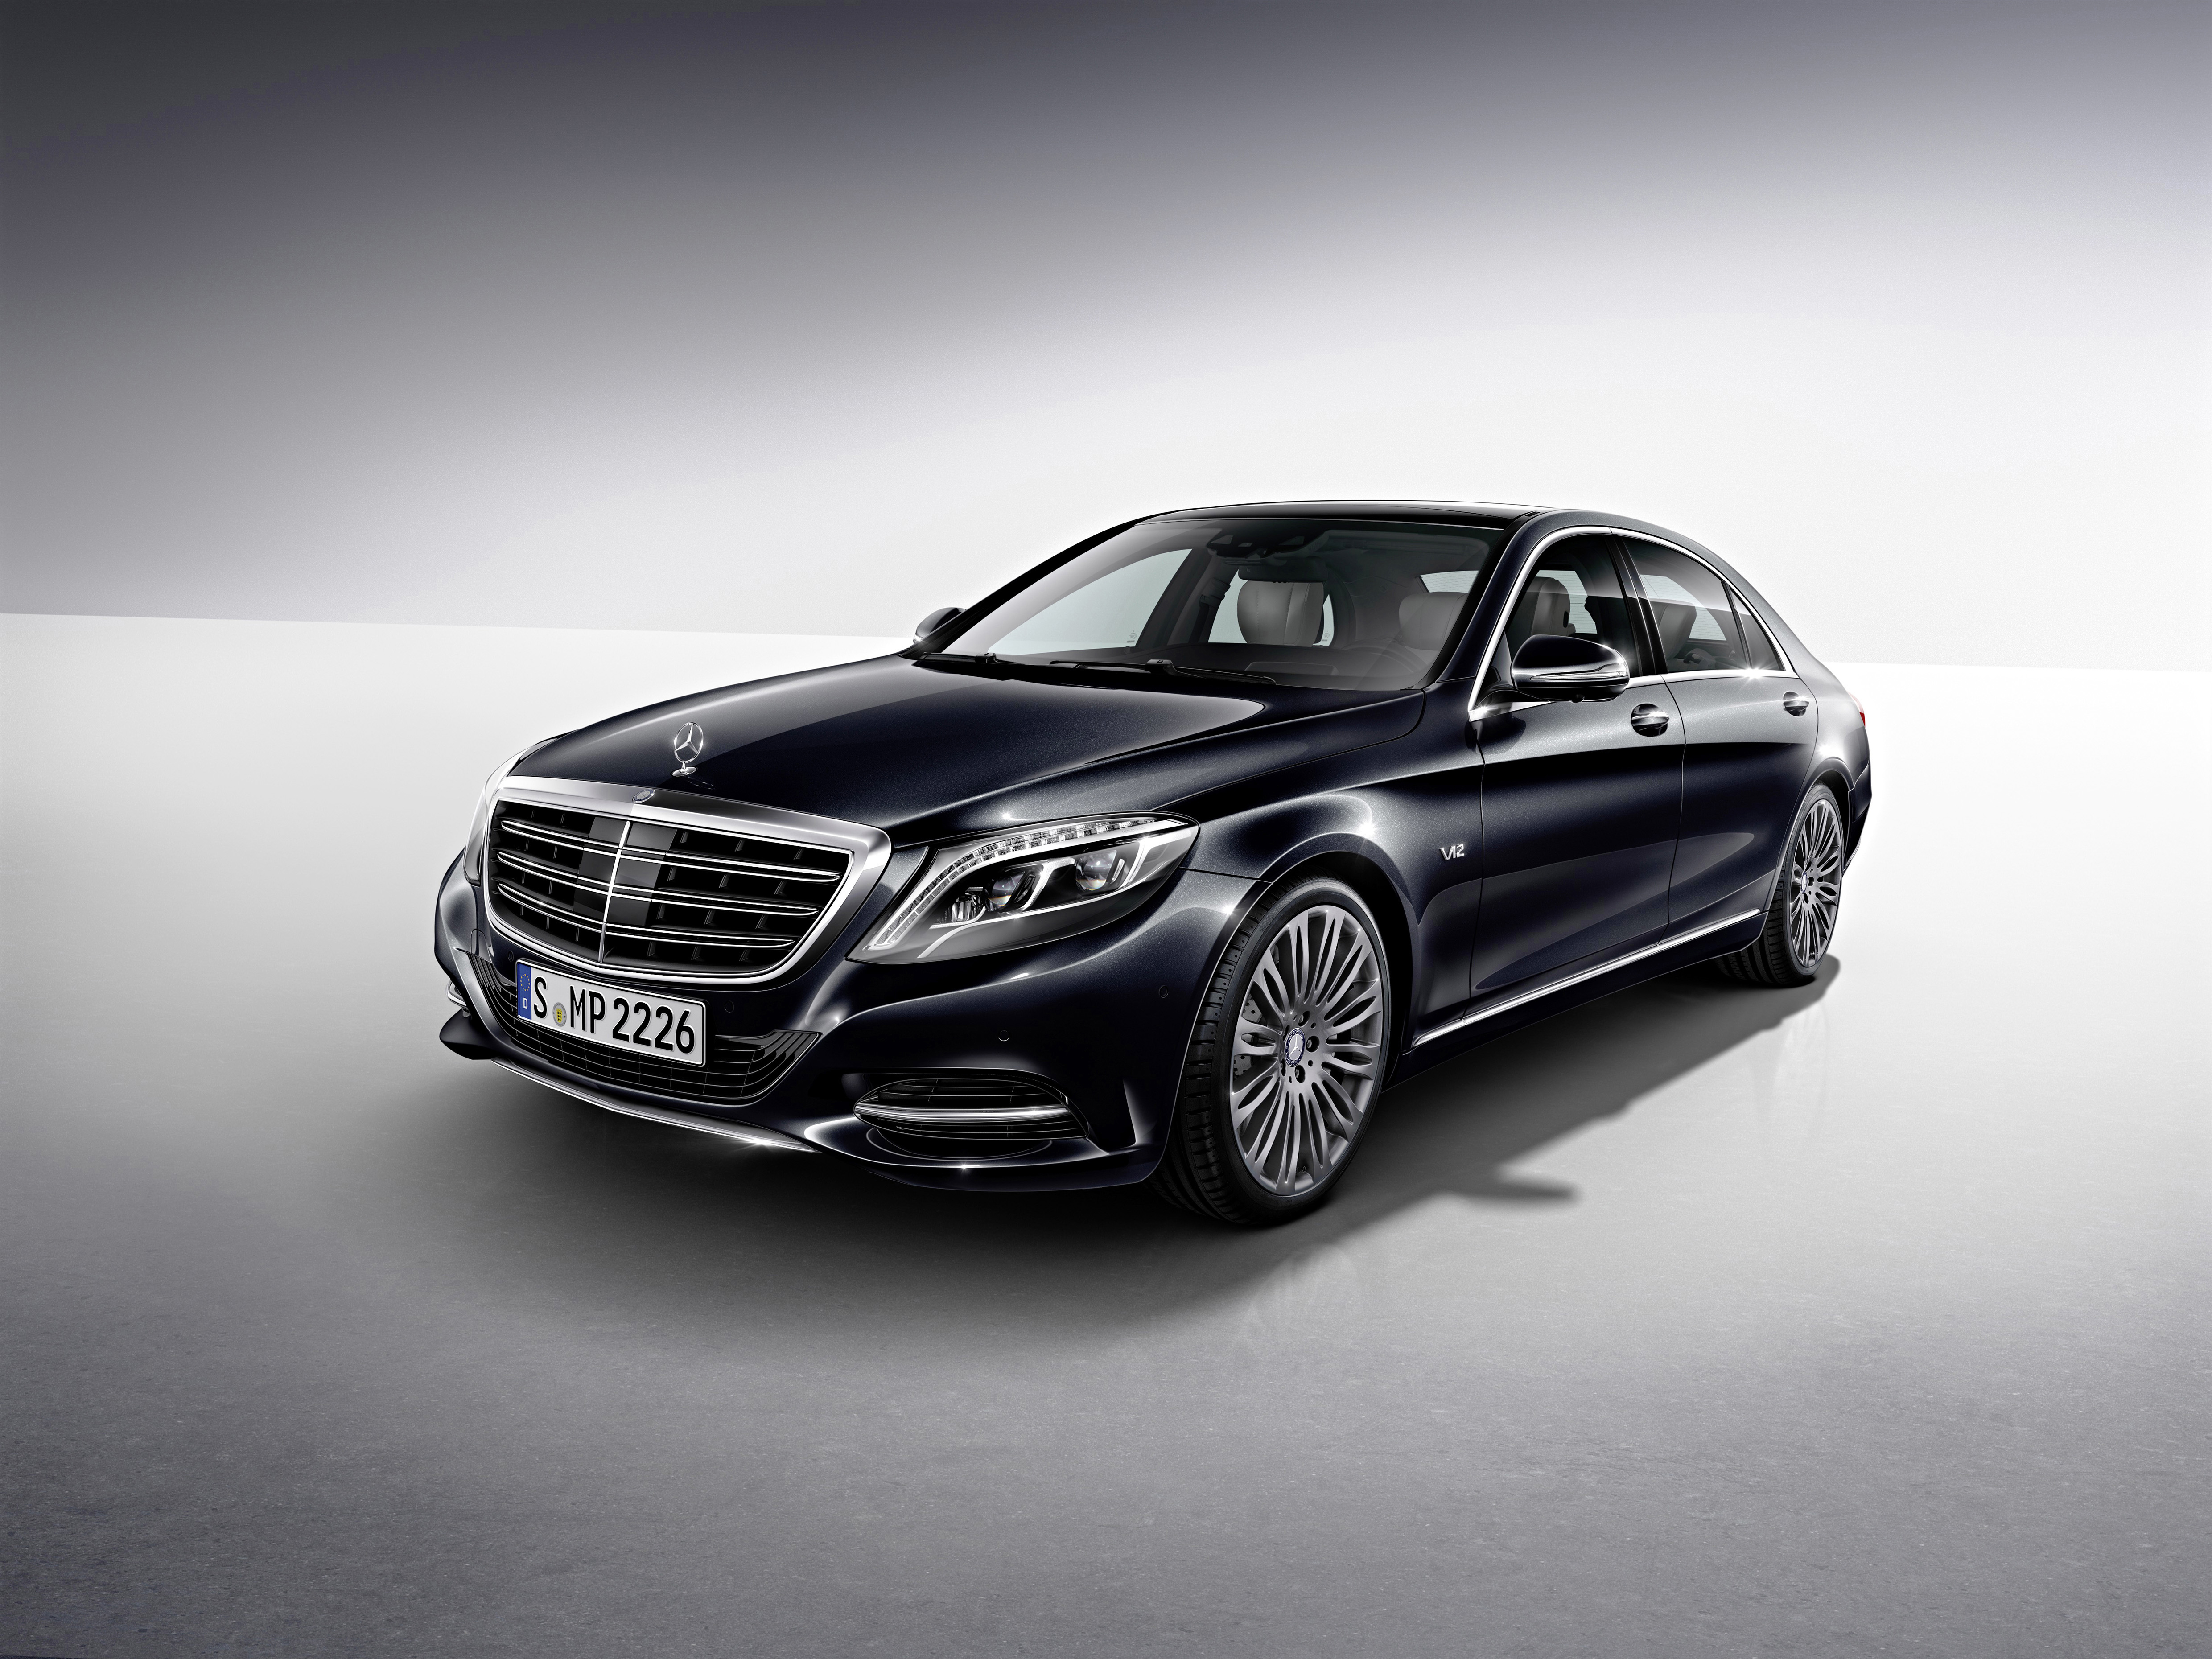 mercedes-benz wallpaper (Mercedes-Benz S-Class)